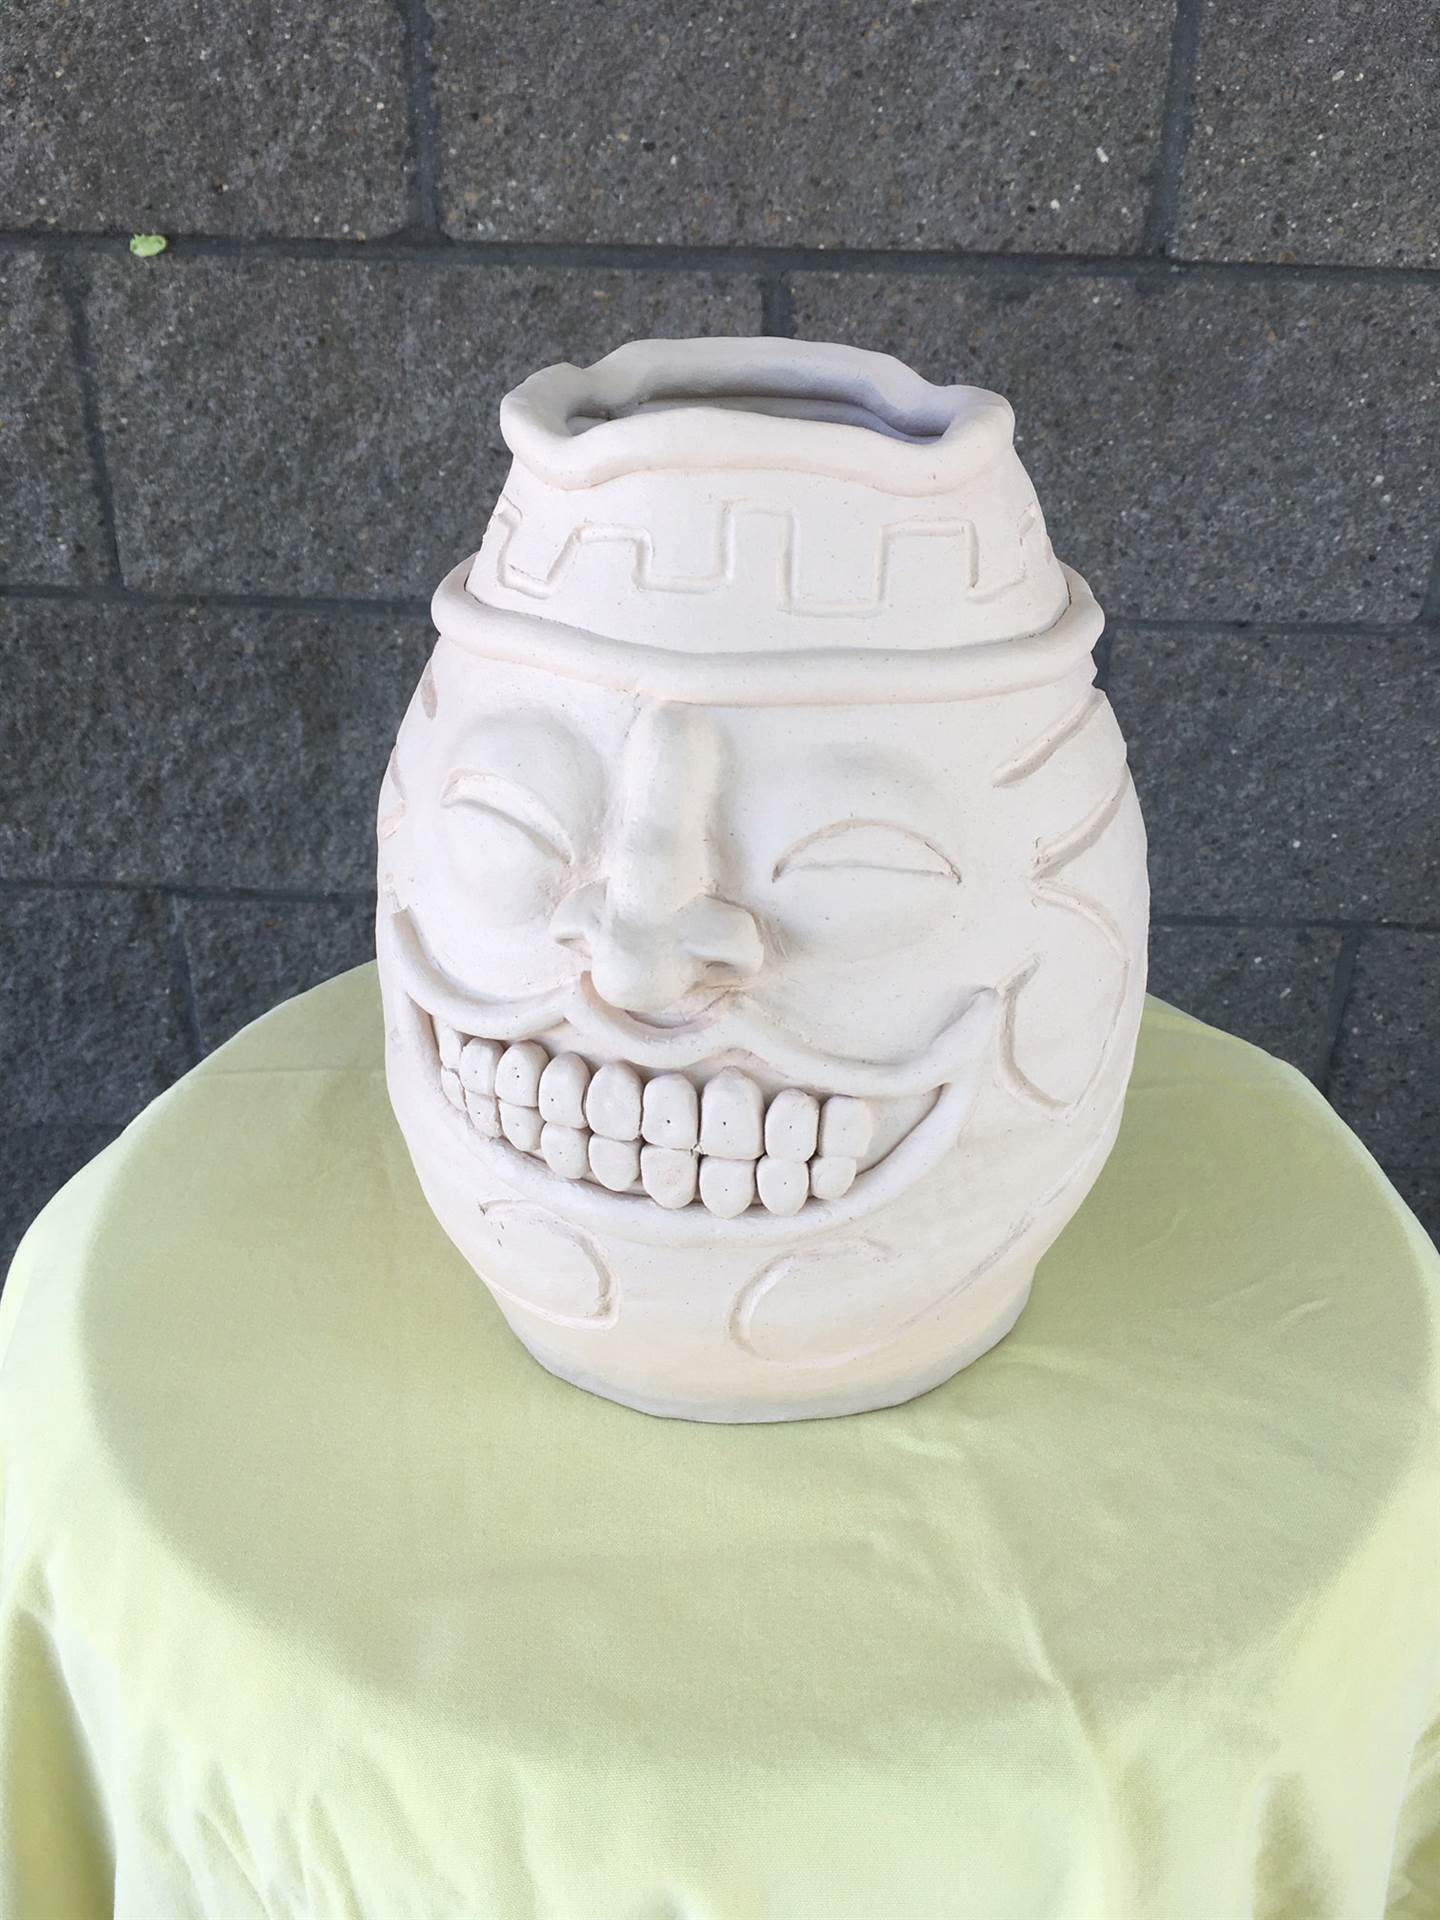 Facecoil Pot Ceramic